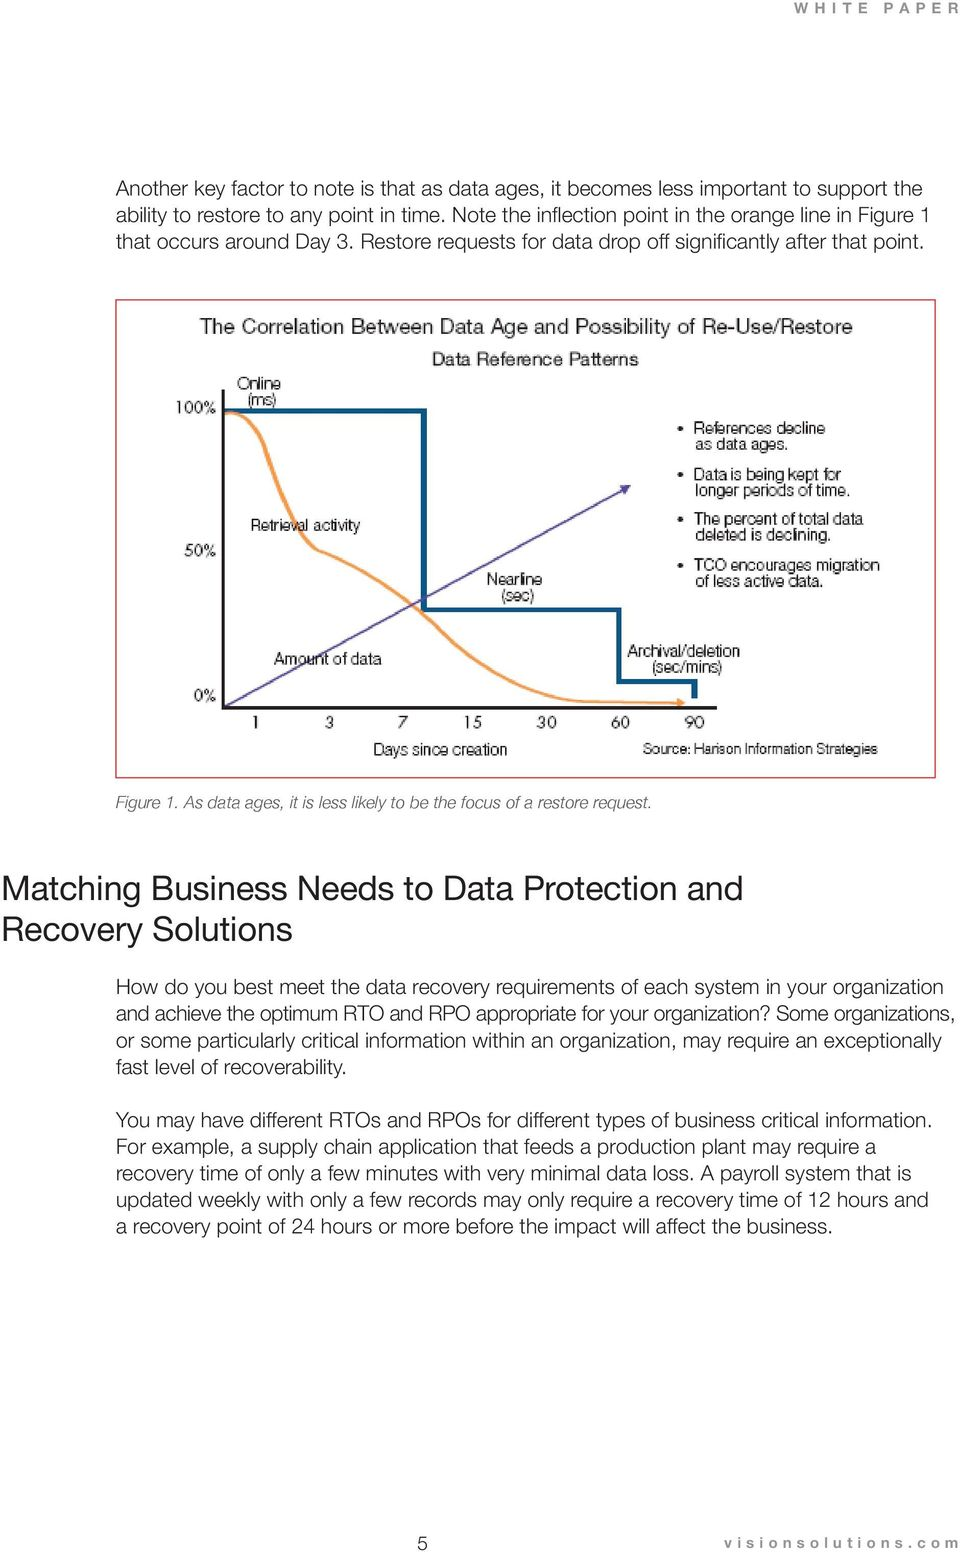 Matching Business Needs to Data Protection and Recovery Solutions How do you best meet the data recovery requirements of each system in your organization and achieve the optimum RTO and RPO